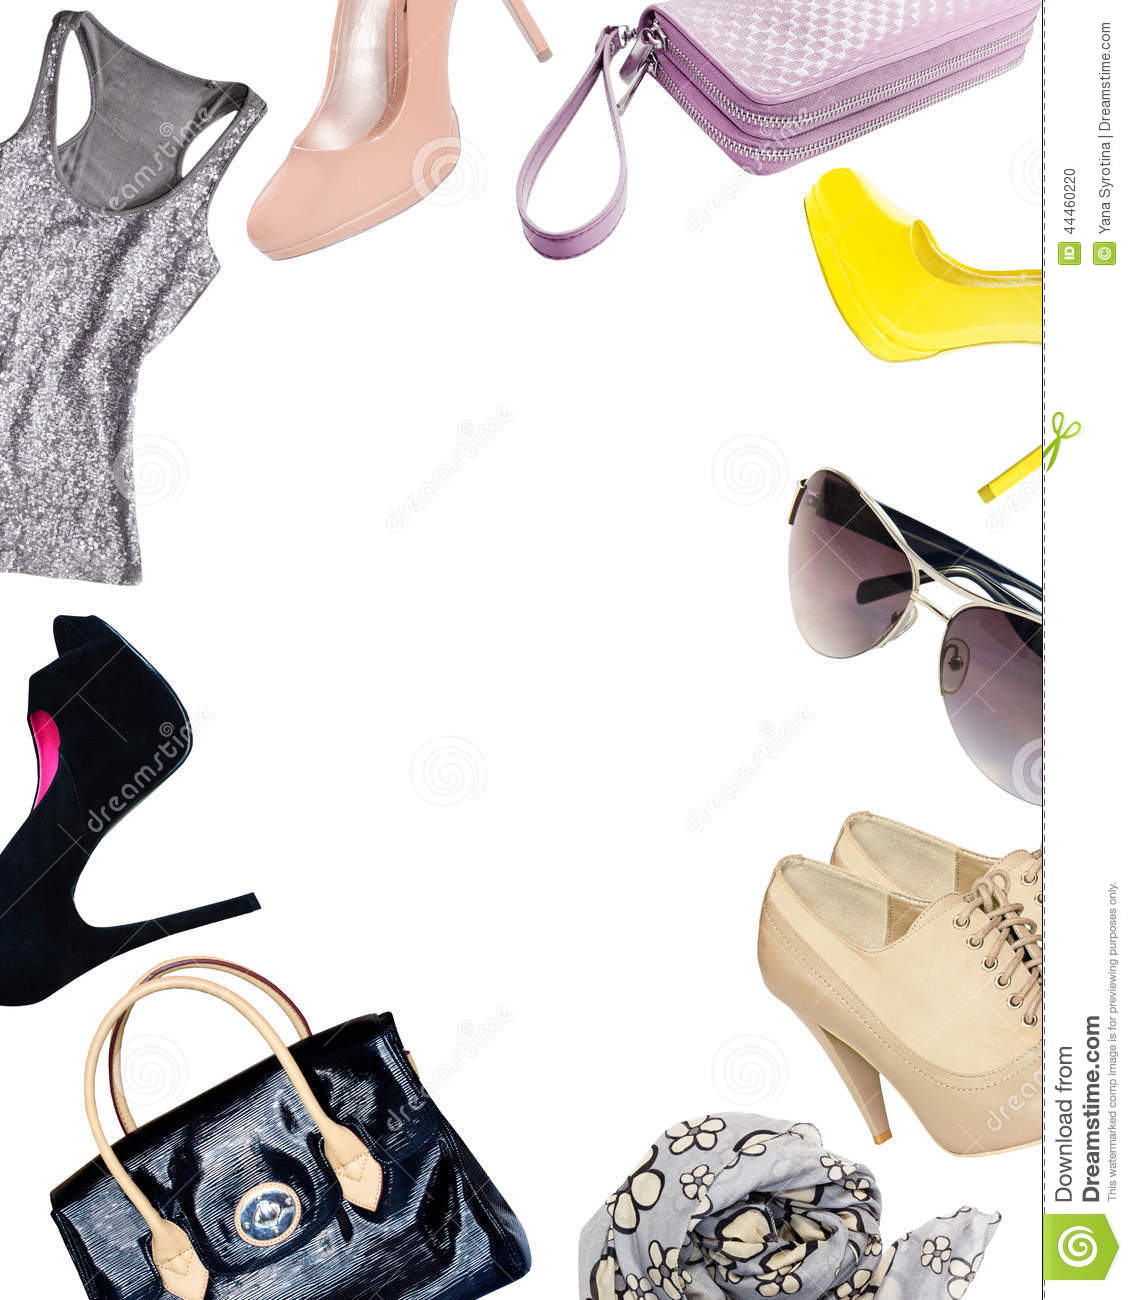 Elements of fashion and apparel design 12